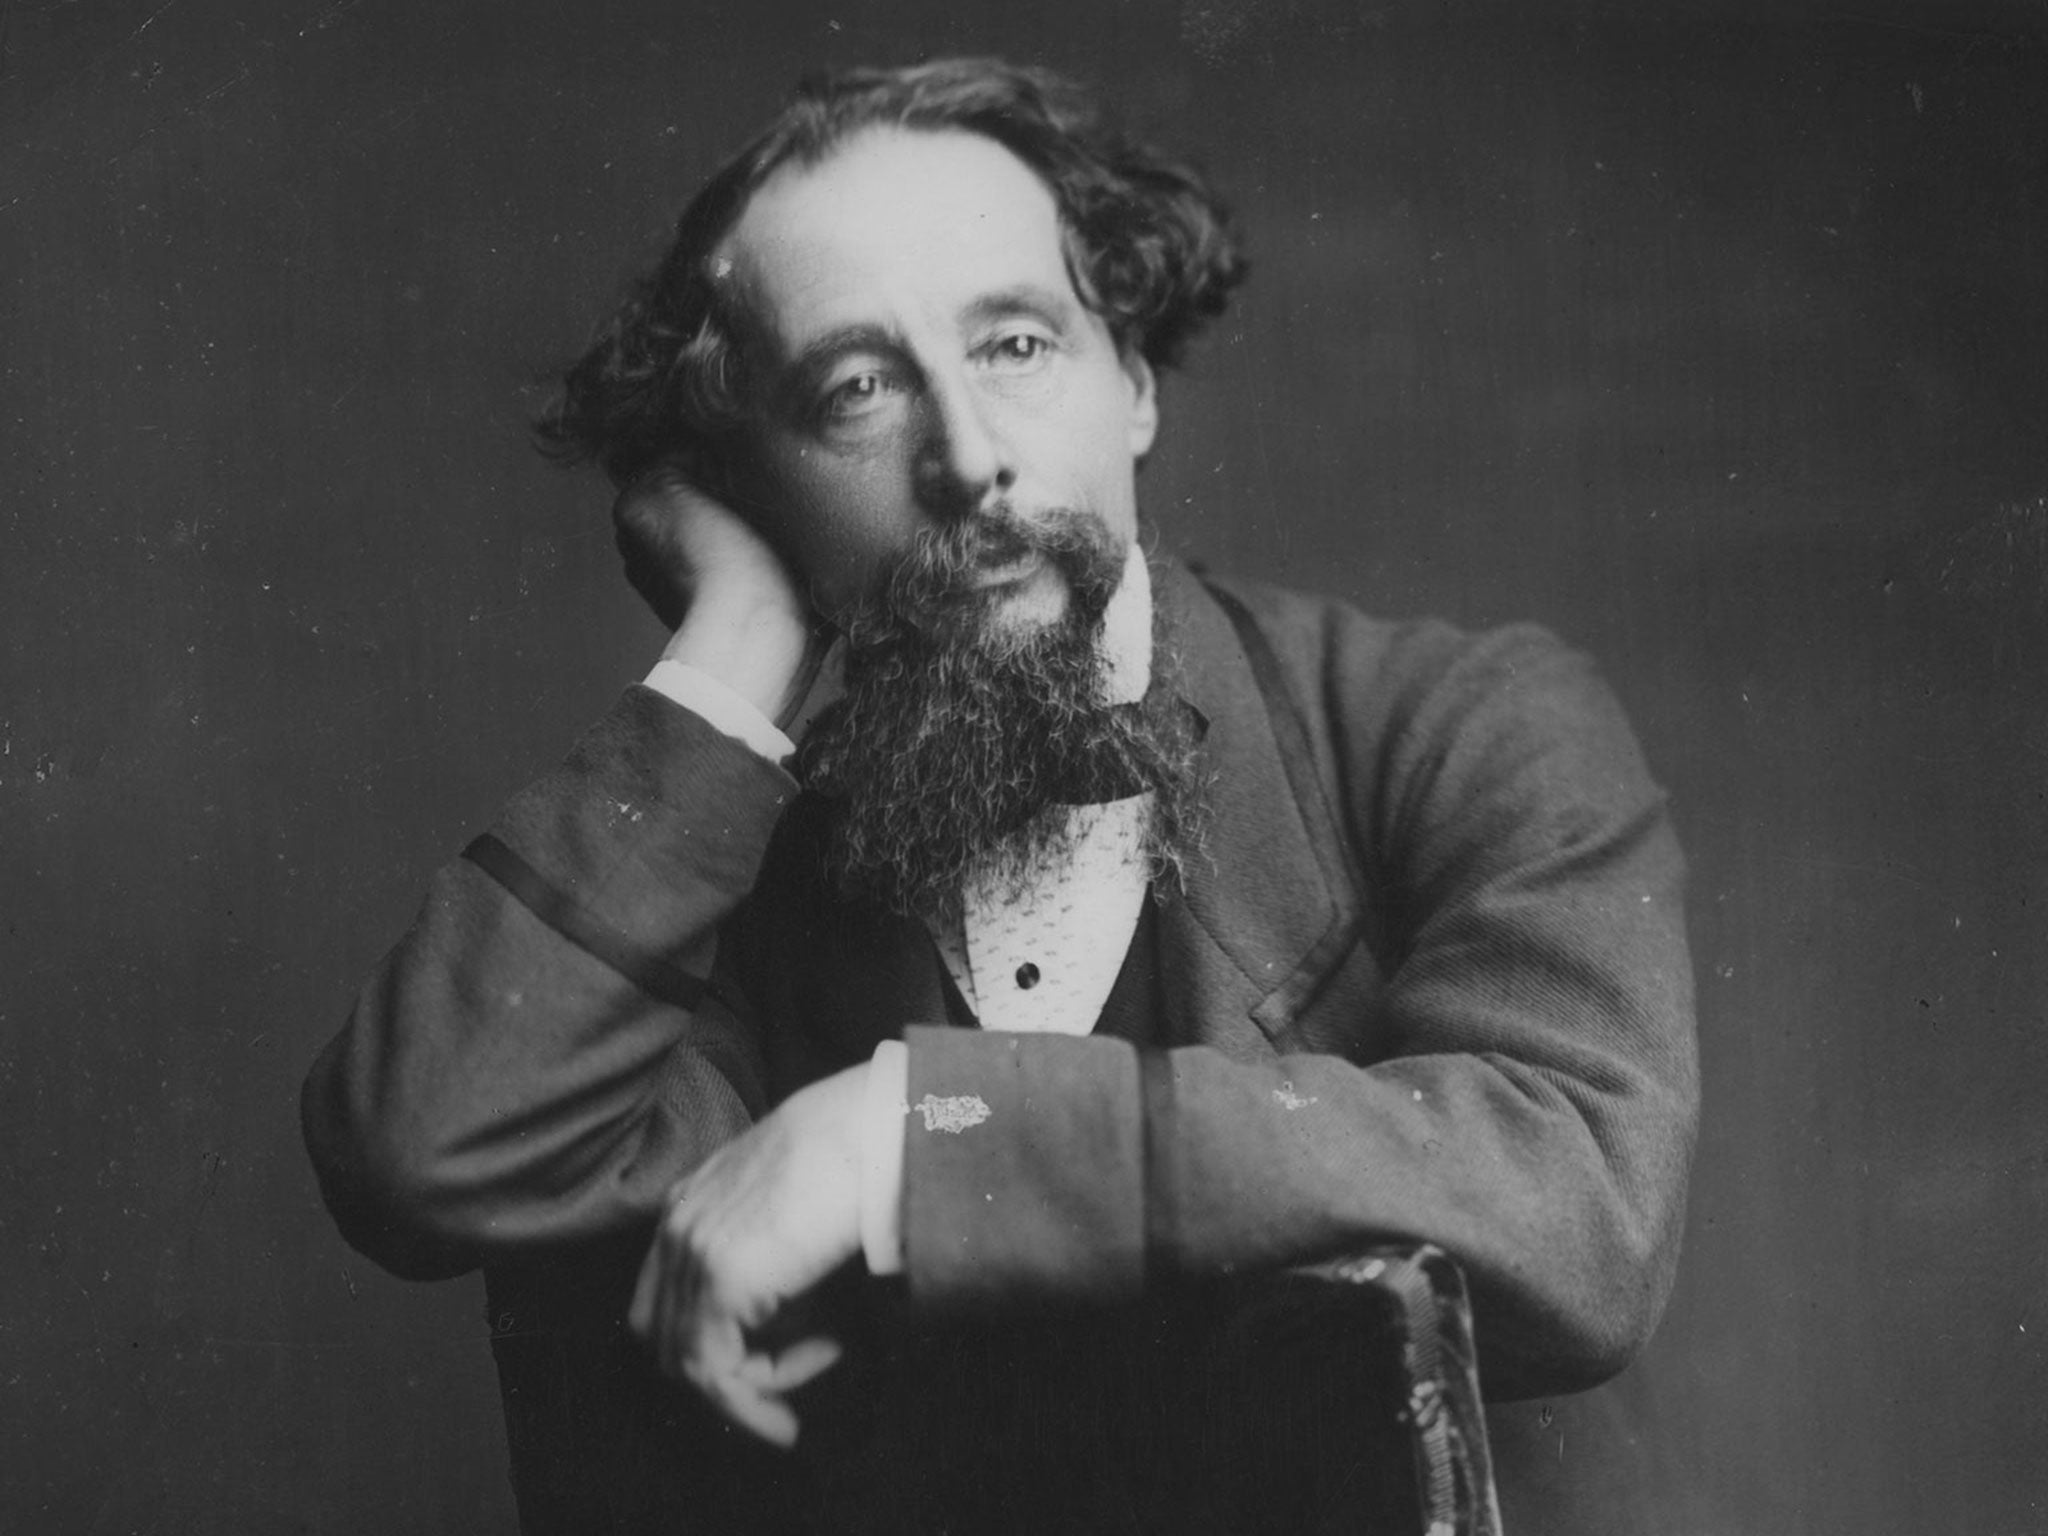 charles dickens revealed as author of essay defending sensational charles dickens revealed as author of essay defending sensational newspaper reporting the independent